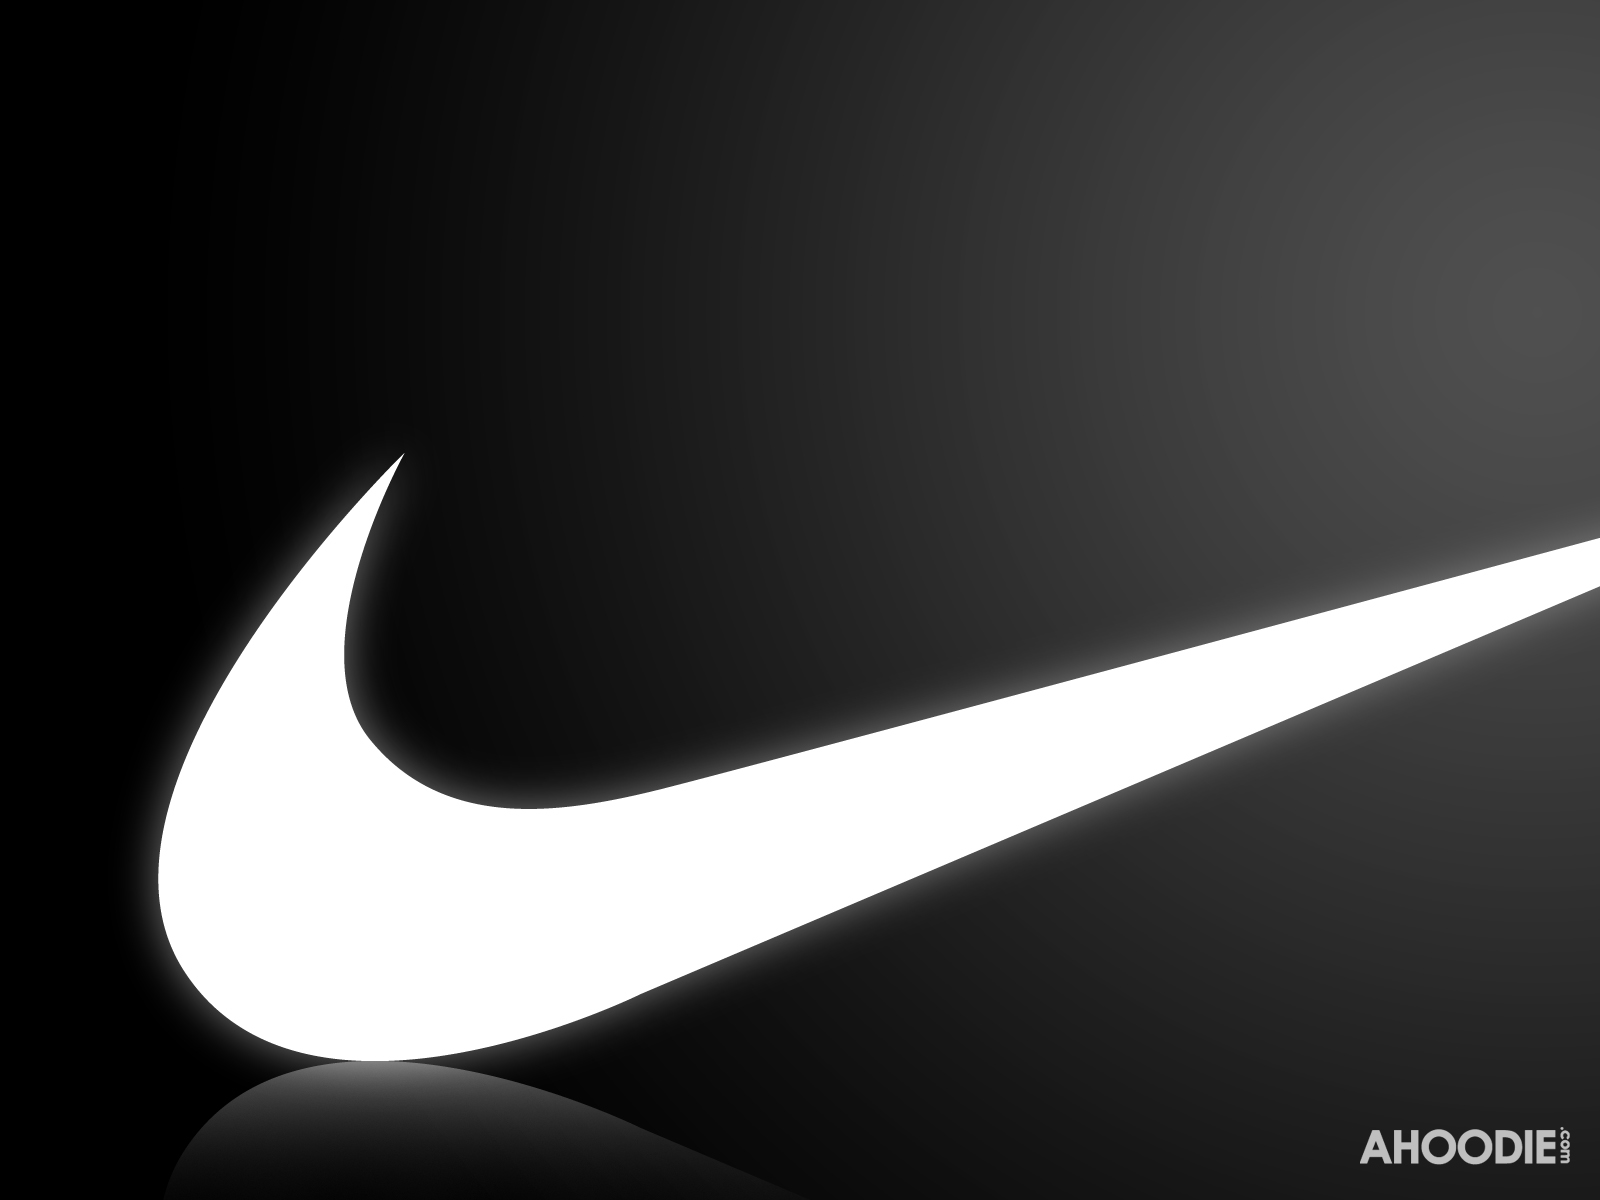 nike swoosh Wallpaper desktop background logo quality black